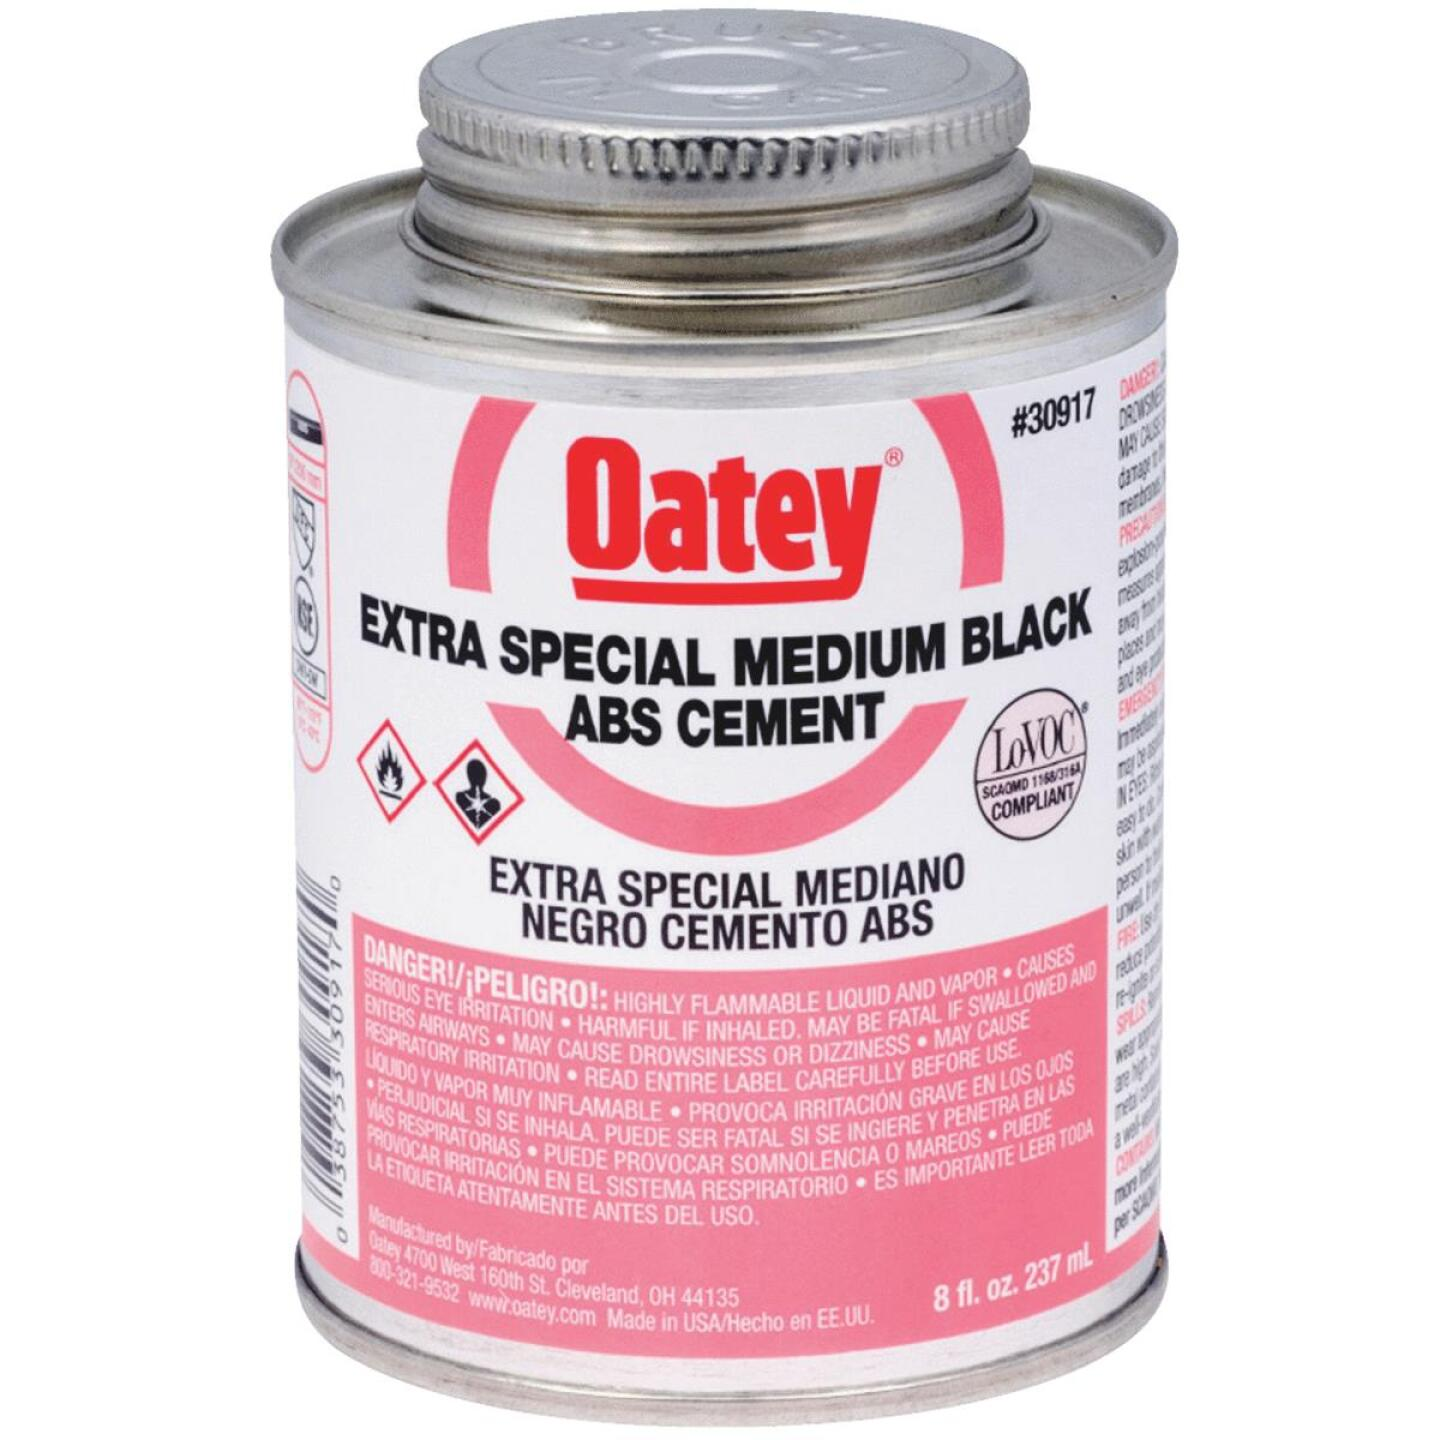 Oatey 8 Oz. Medium Bodied Black Extra Special ABS Cement Image 1